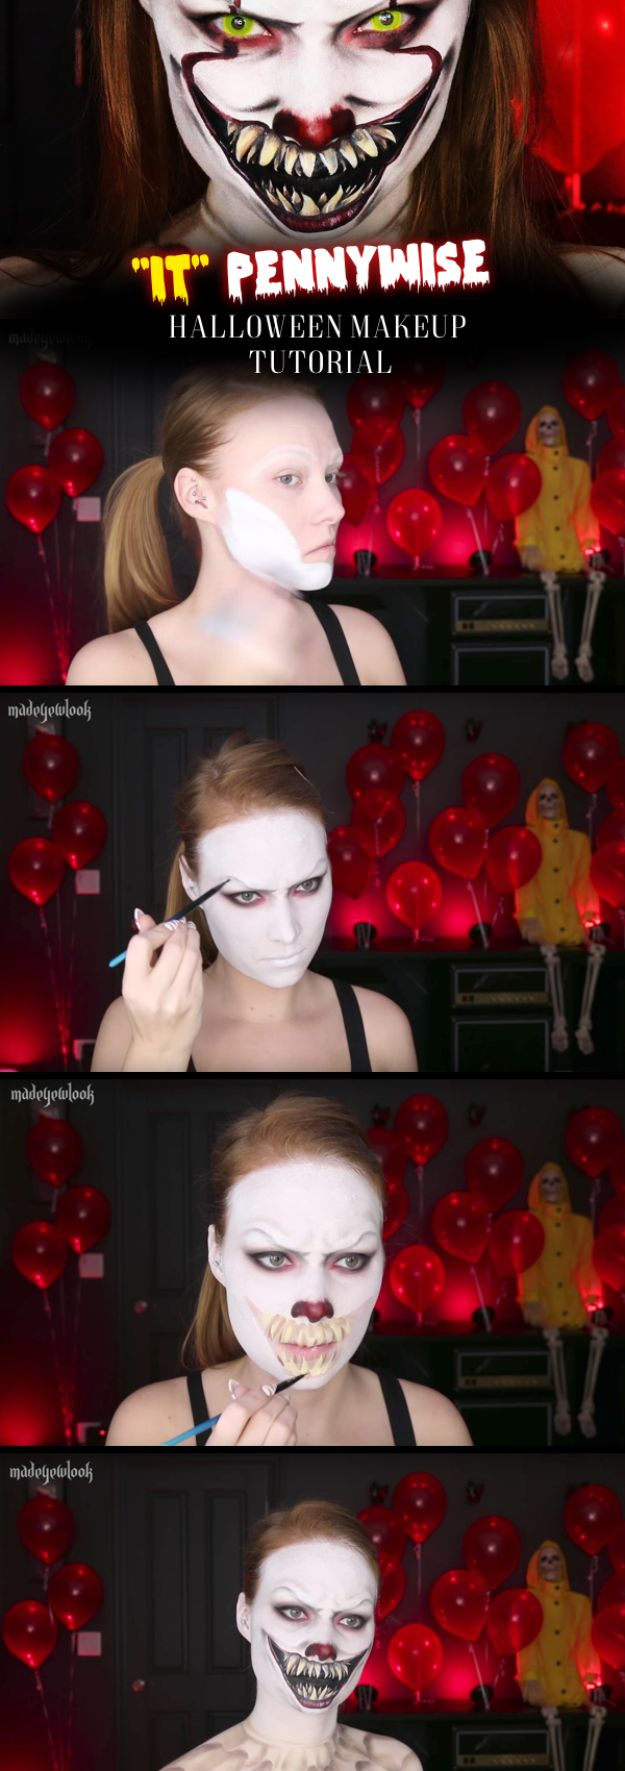 Best Halloween Makeup Tutorials - Pennywise Makeup - Easy Makeup Tips and Tutorial Ideas for The Best Halloween Costume - Animals, Eyes, Creative Faces, Simple and Scary Ghosts, Skeletons and Creatures - Zombie Makeup, Cute Looks, DIY Vampire, Gypsy, Mermaid and Creepy Sugar Skull, Cool Glam Looks for A Halloween Party and Instagram Photos - Ideas for Couples and Kids http://diyjoy.com/best-halloween-makeup-tutorials